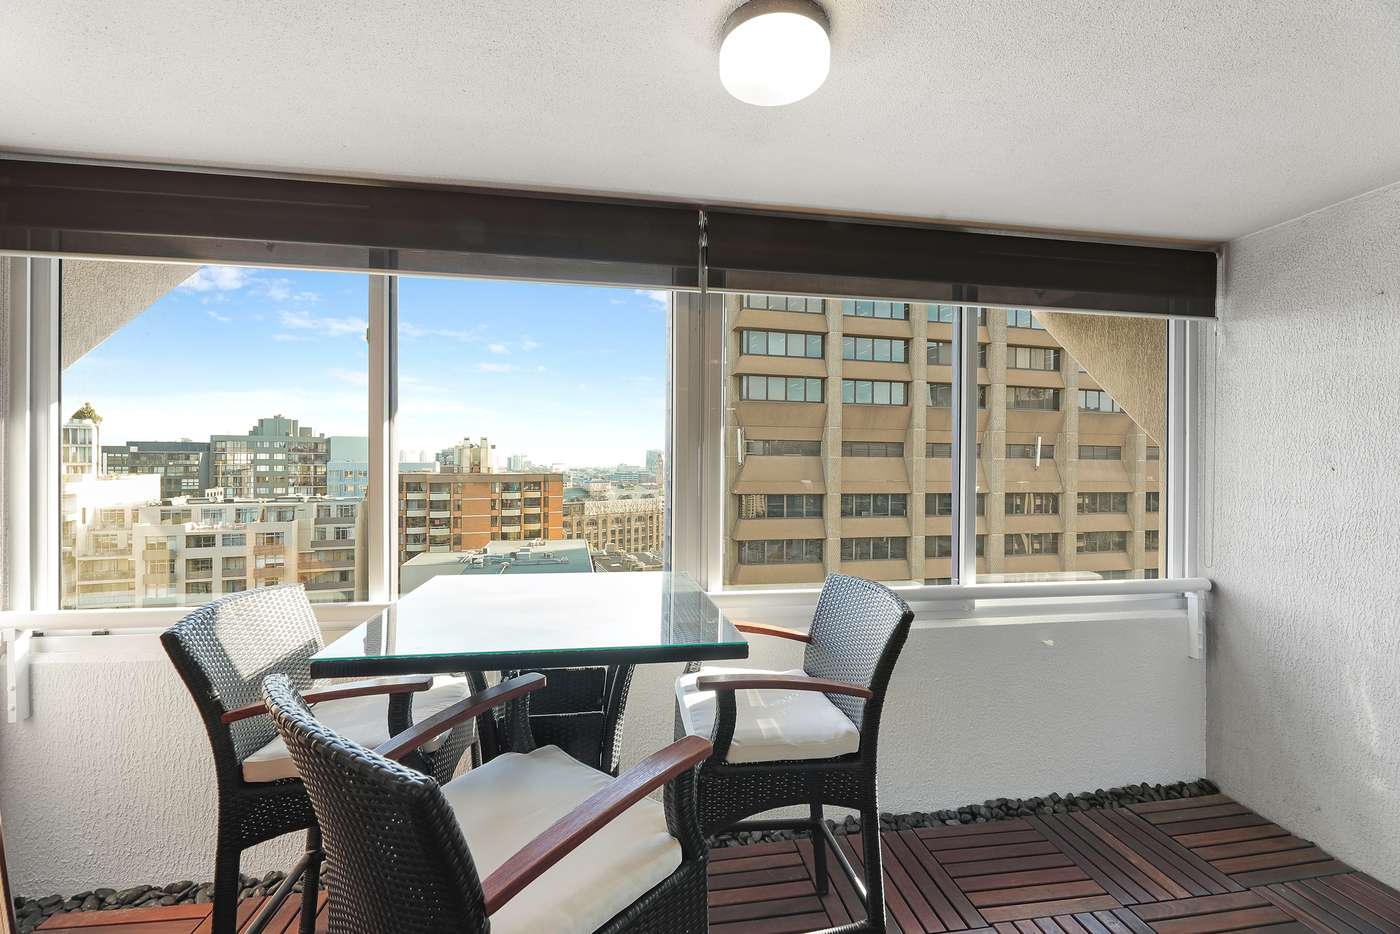 Main view of Homely apartment listing, 132/6-14 Oxford Street, Darlinghurst NSW 2010